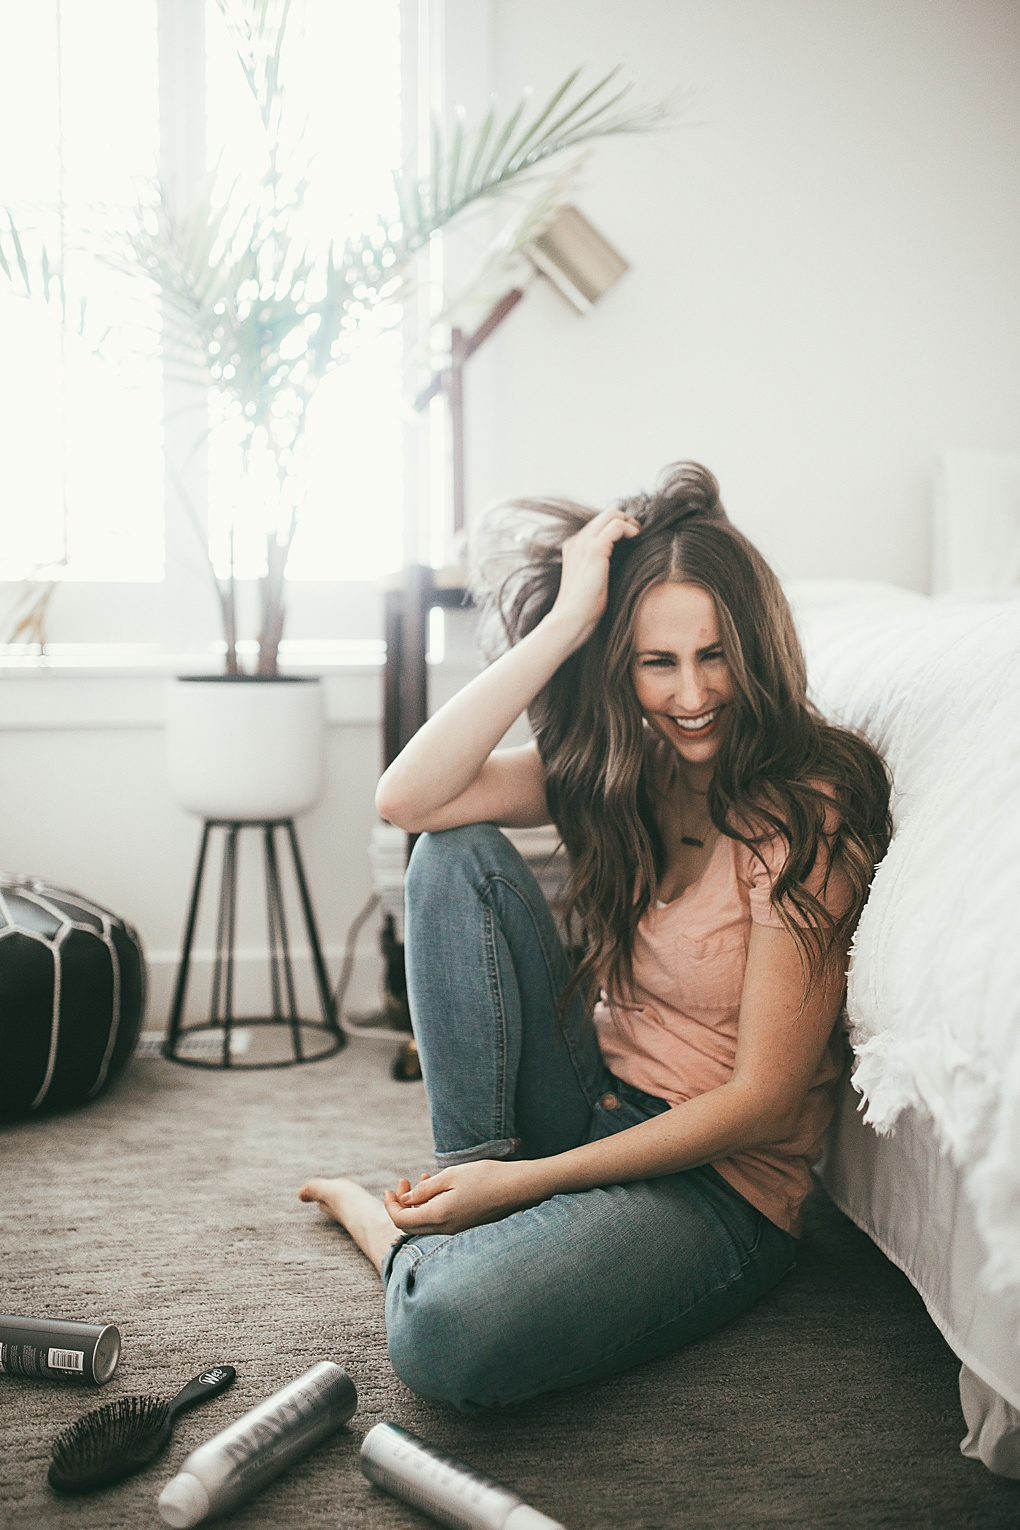 CUrious how ot make your curls last longer? Utah Style Blogger Dani Marie is sharing her top 5 tips and tricks to help make your curls last longer. See her tips here!